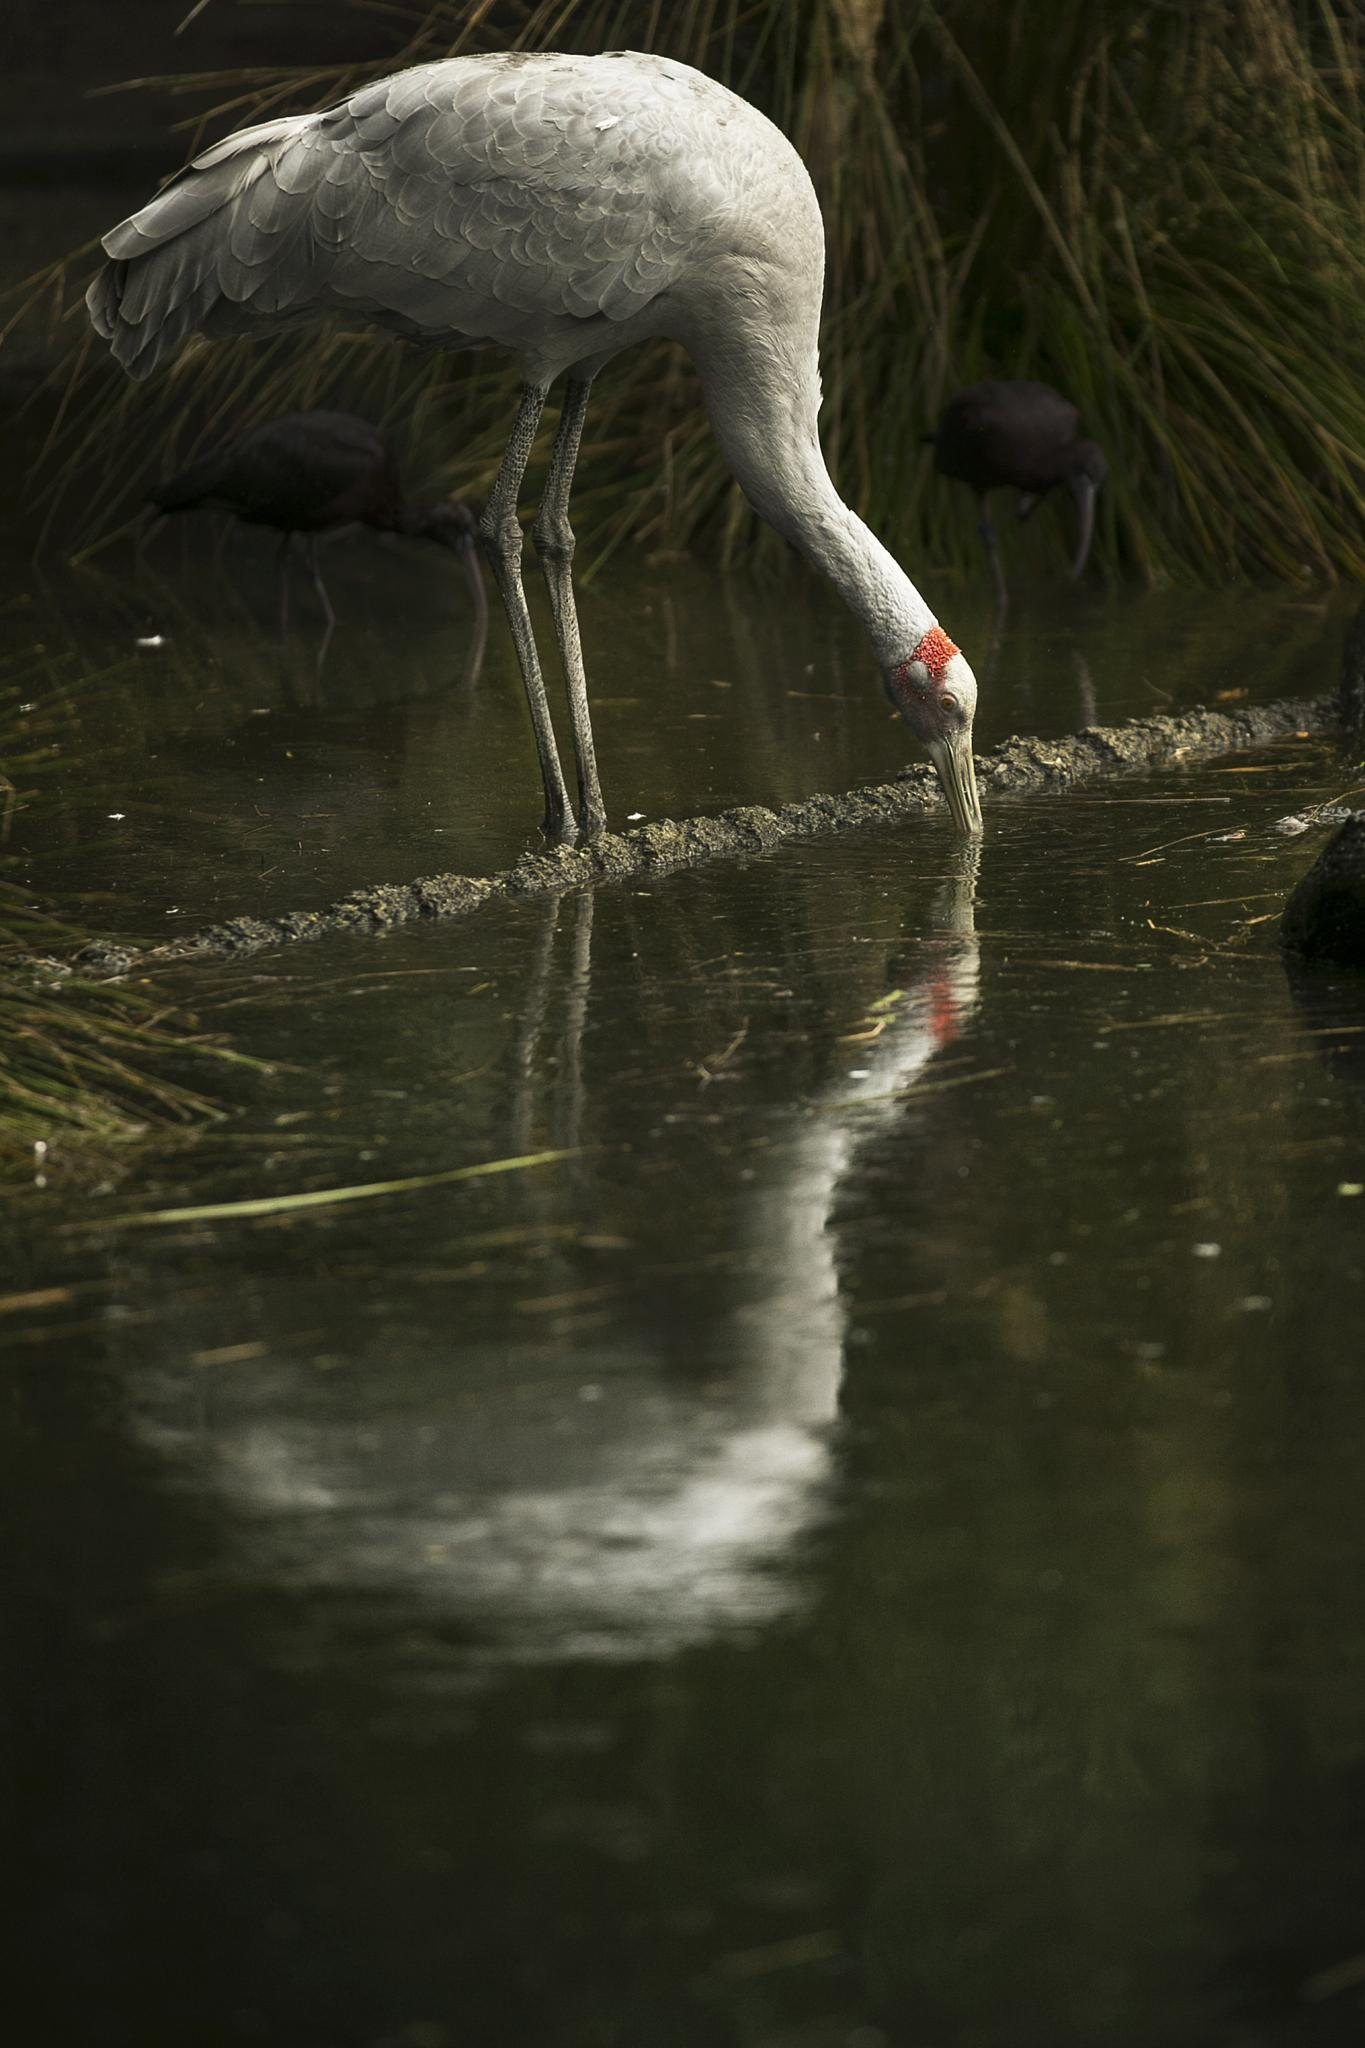 Brolga Reflections by Michelle Foong